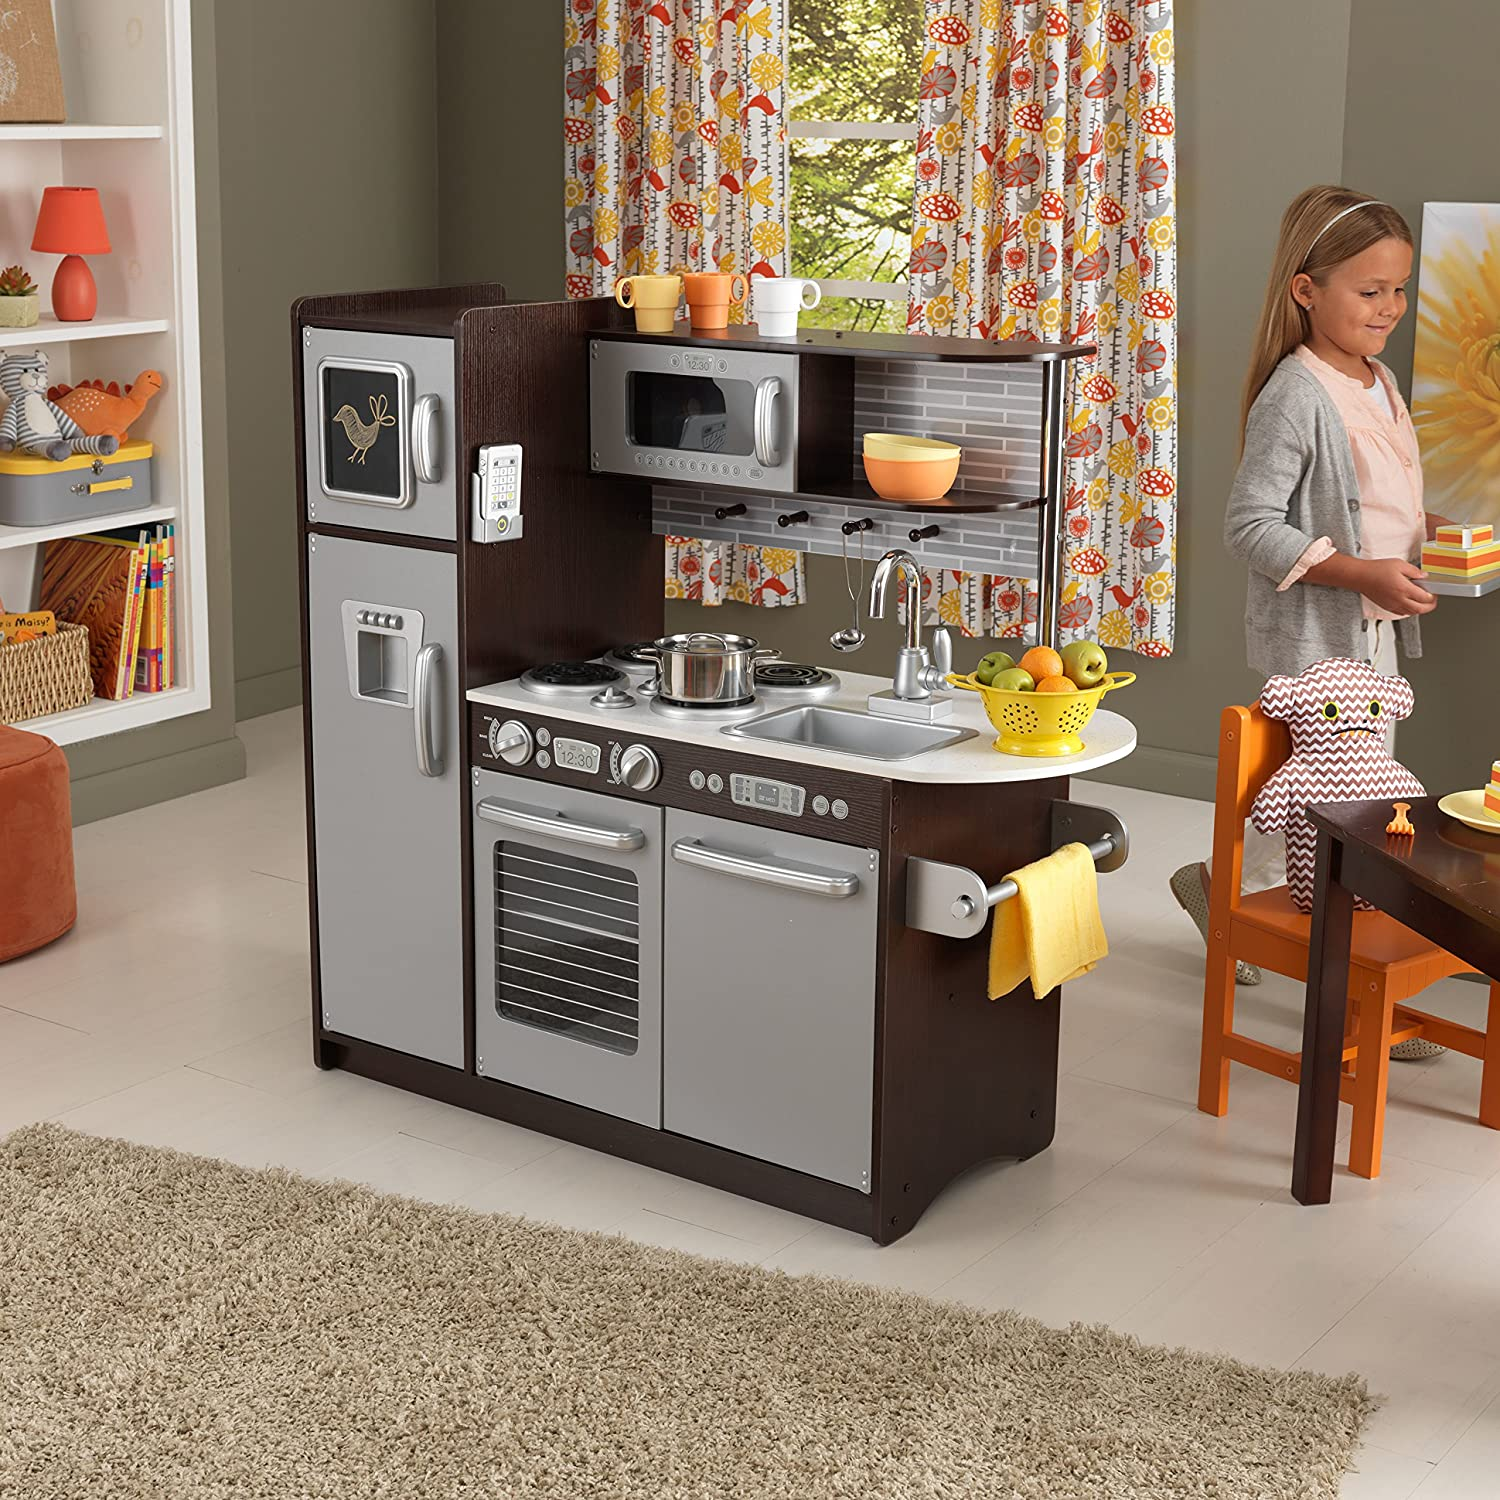 Top 10 Best Kitchen Set For Toddlers in 2020 9